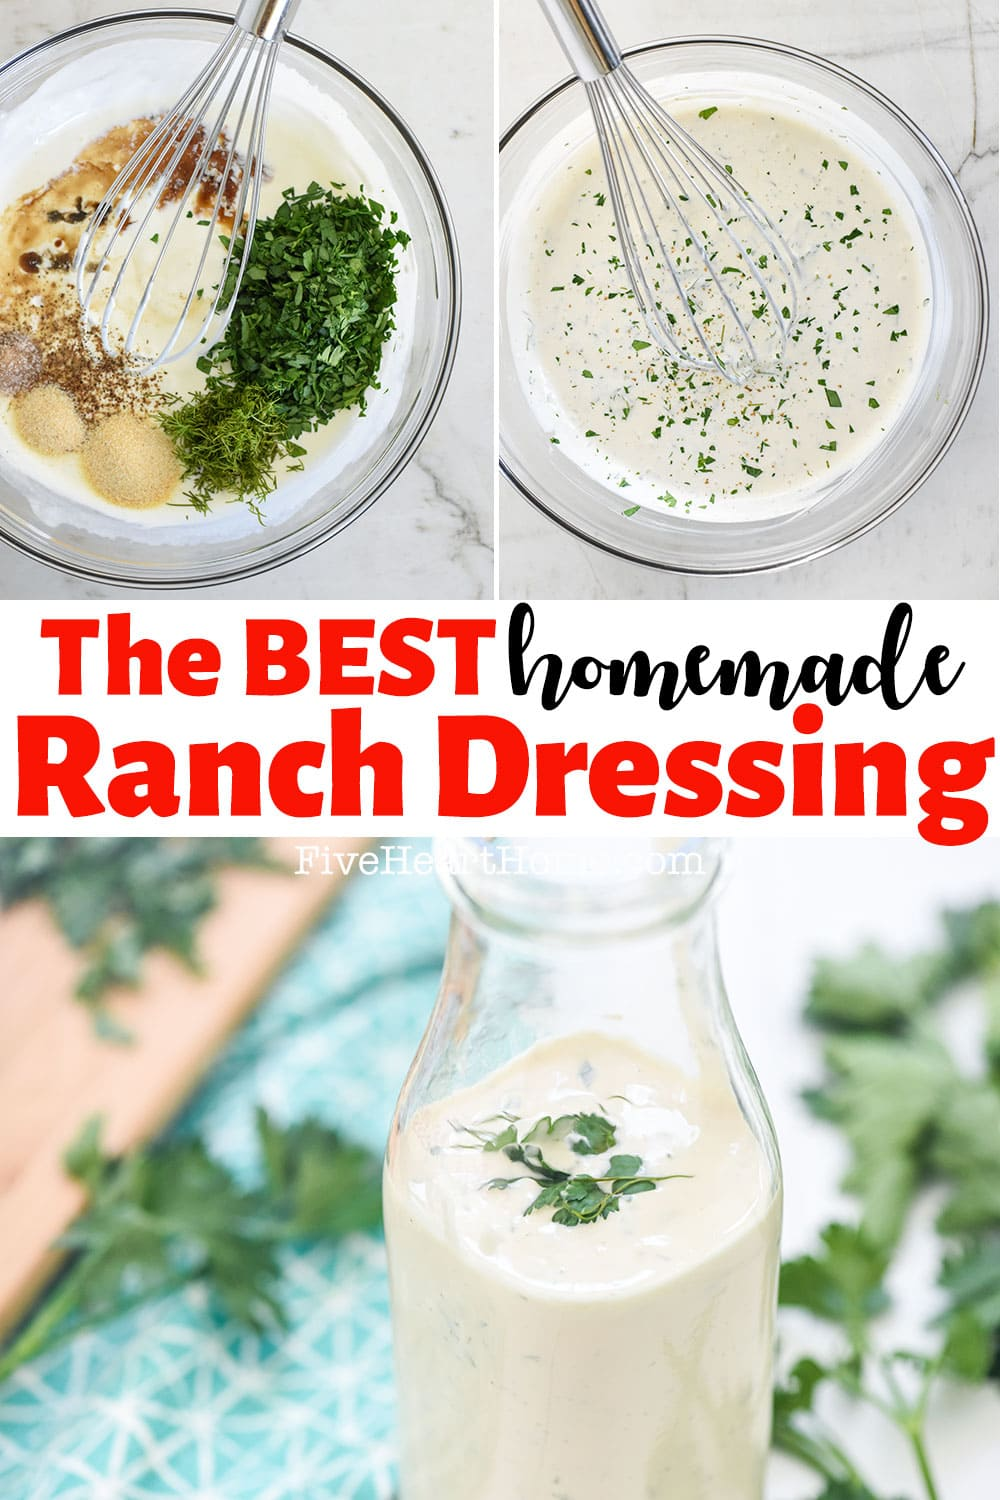 The BEST Homemade Ranch Dressing ~ this ranch dressing recipe is all-natural, loaded with buttermilk and herbs, quick and easy to make, and so delicious that you'll never go back to store-bought again! | FiveHeartHome.com via @fivehearthome